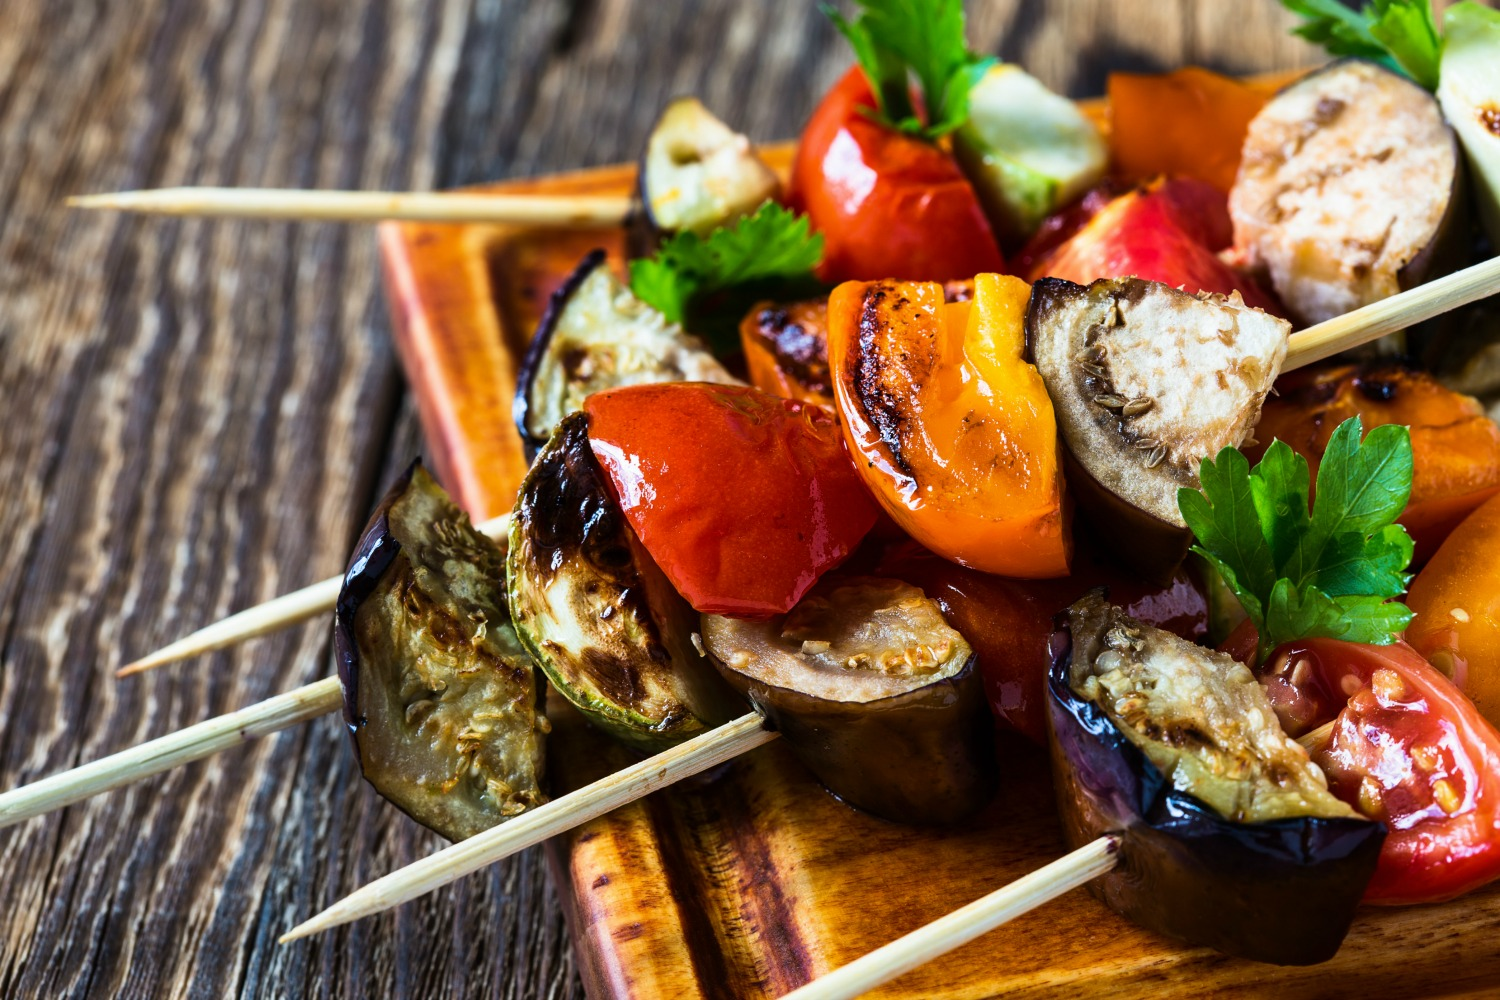 Delicious Grilled Vegetable Skewers perfect for a back yard BBQ